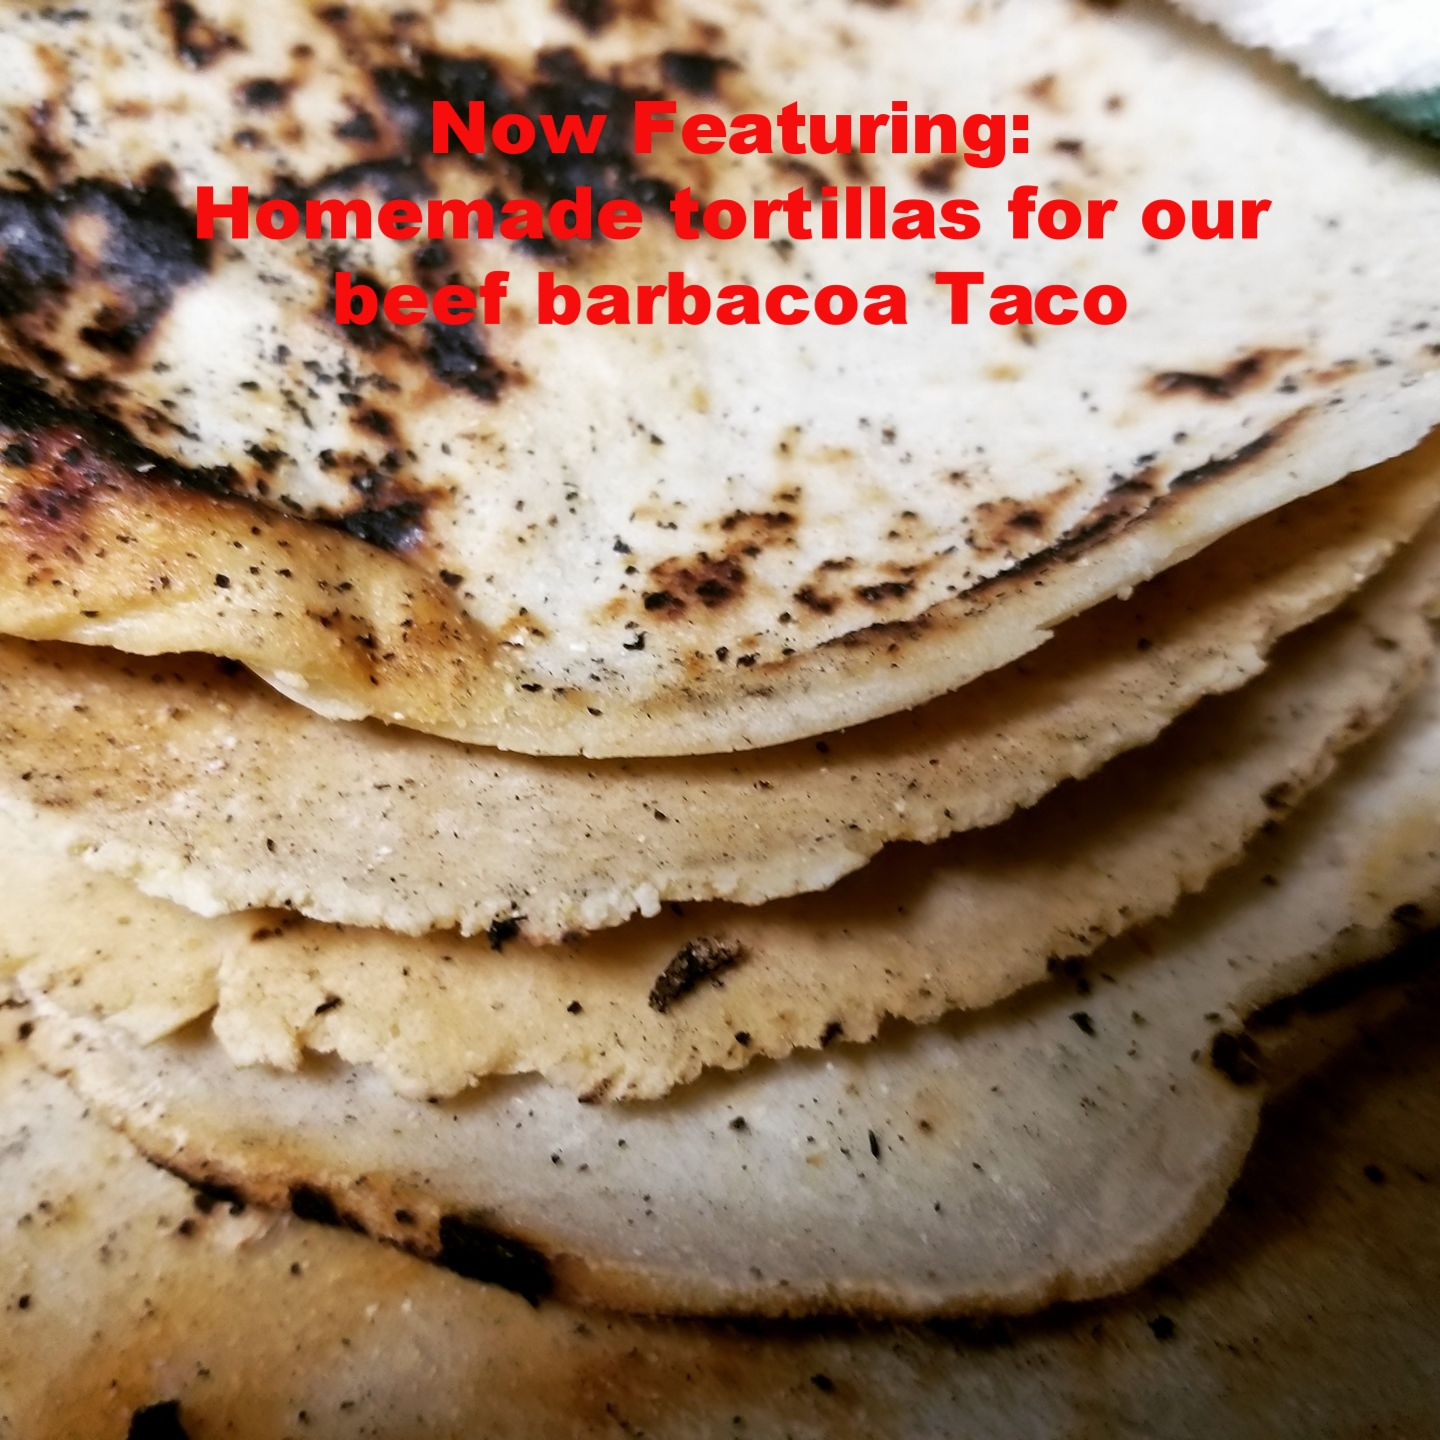 Automatic Taco -Now featuring homemade tortillas for our beef barbecoa Taco.jpg